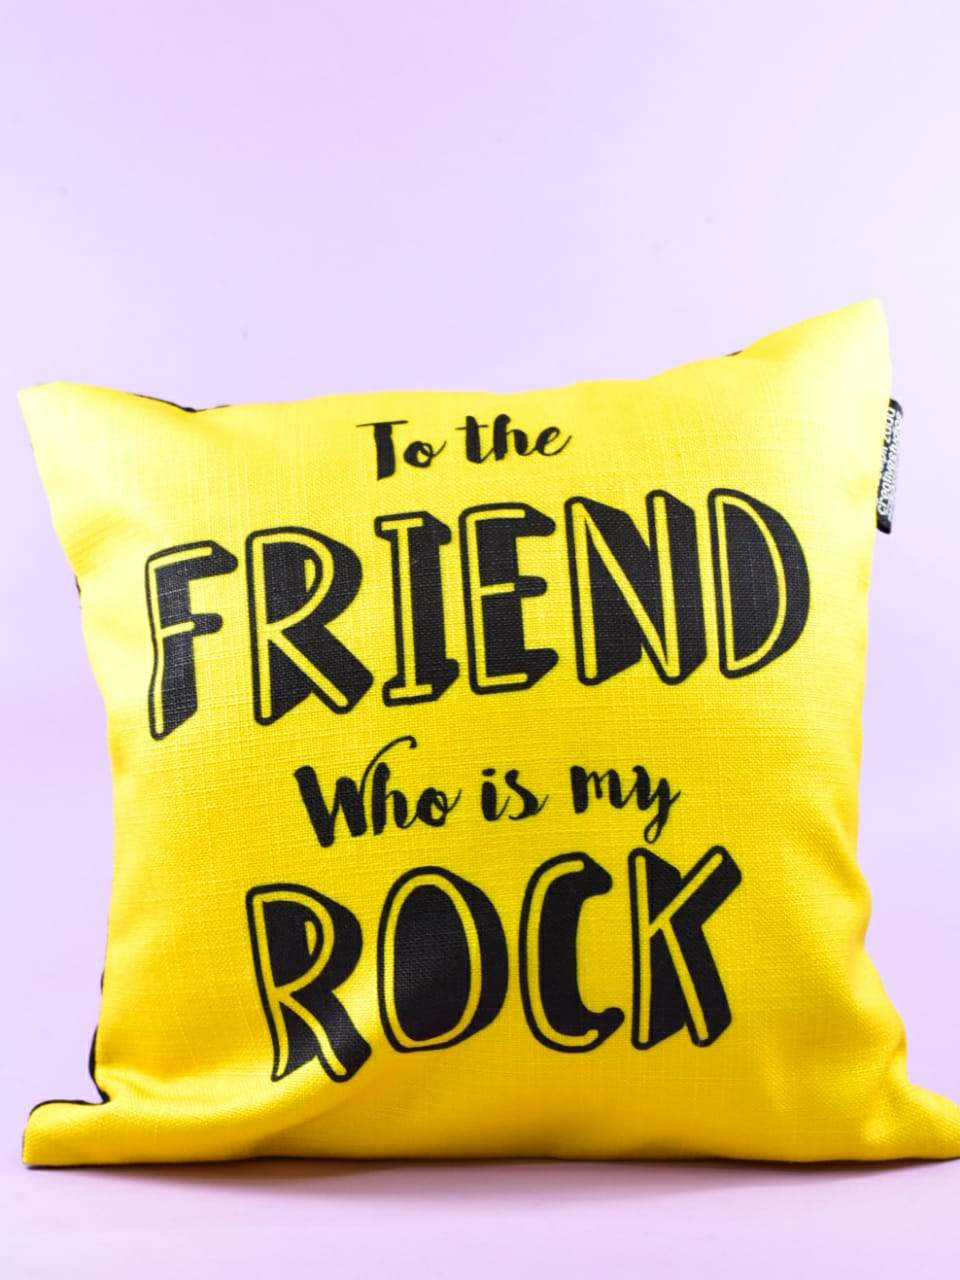 To the friend who is my rock - Cushion Cover